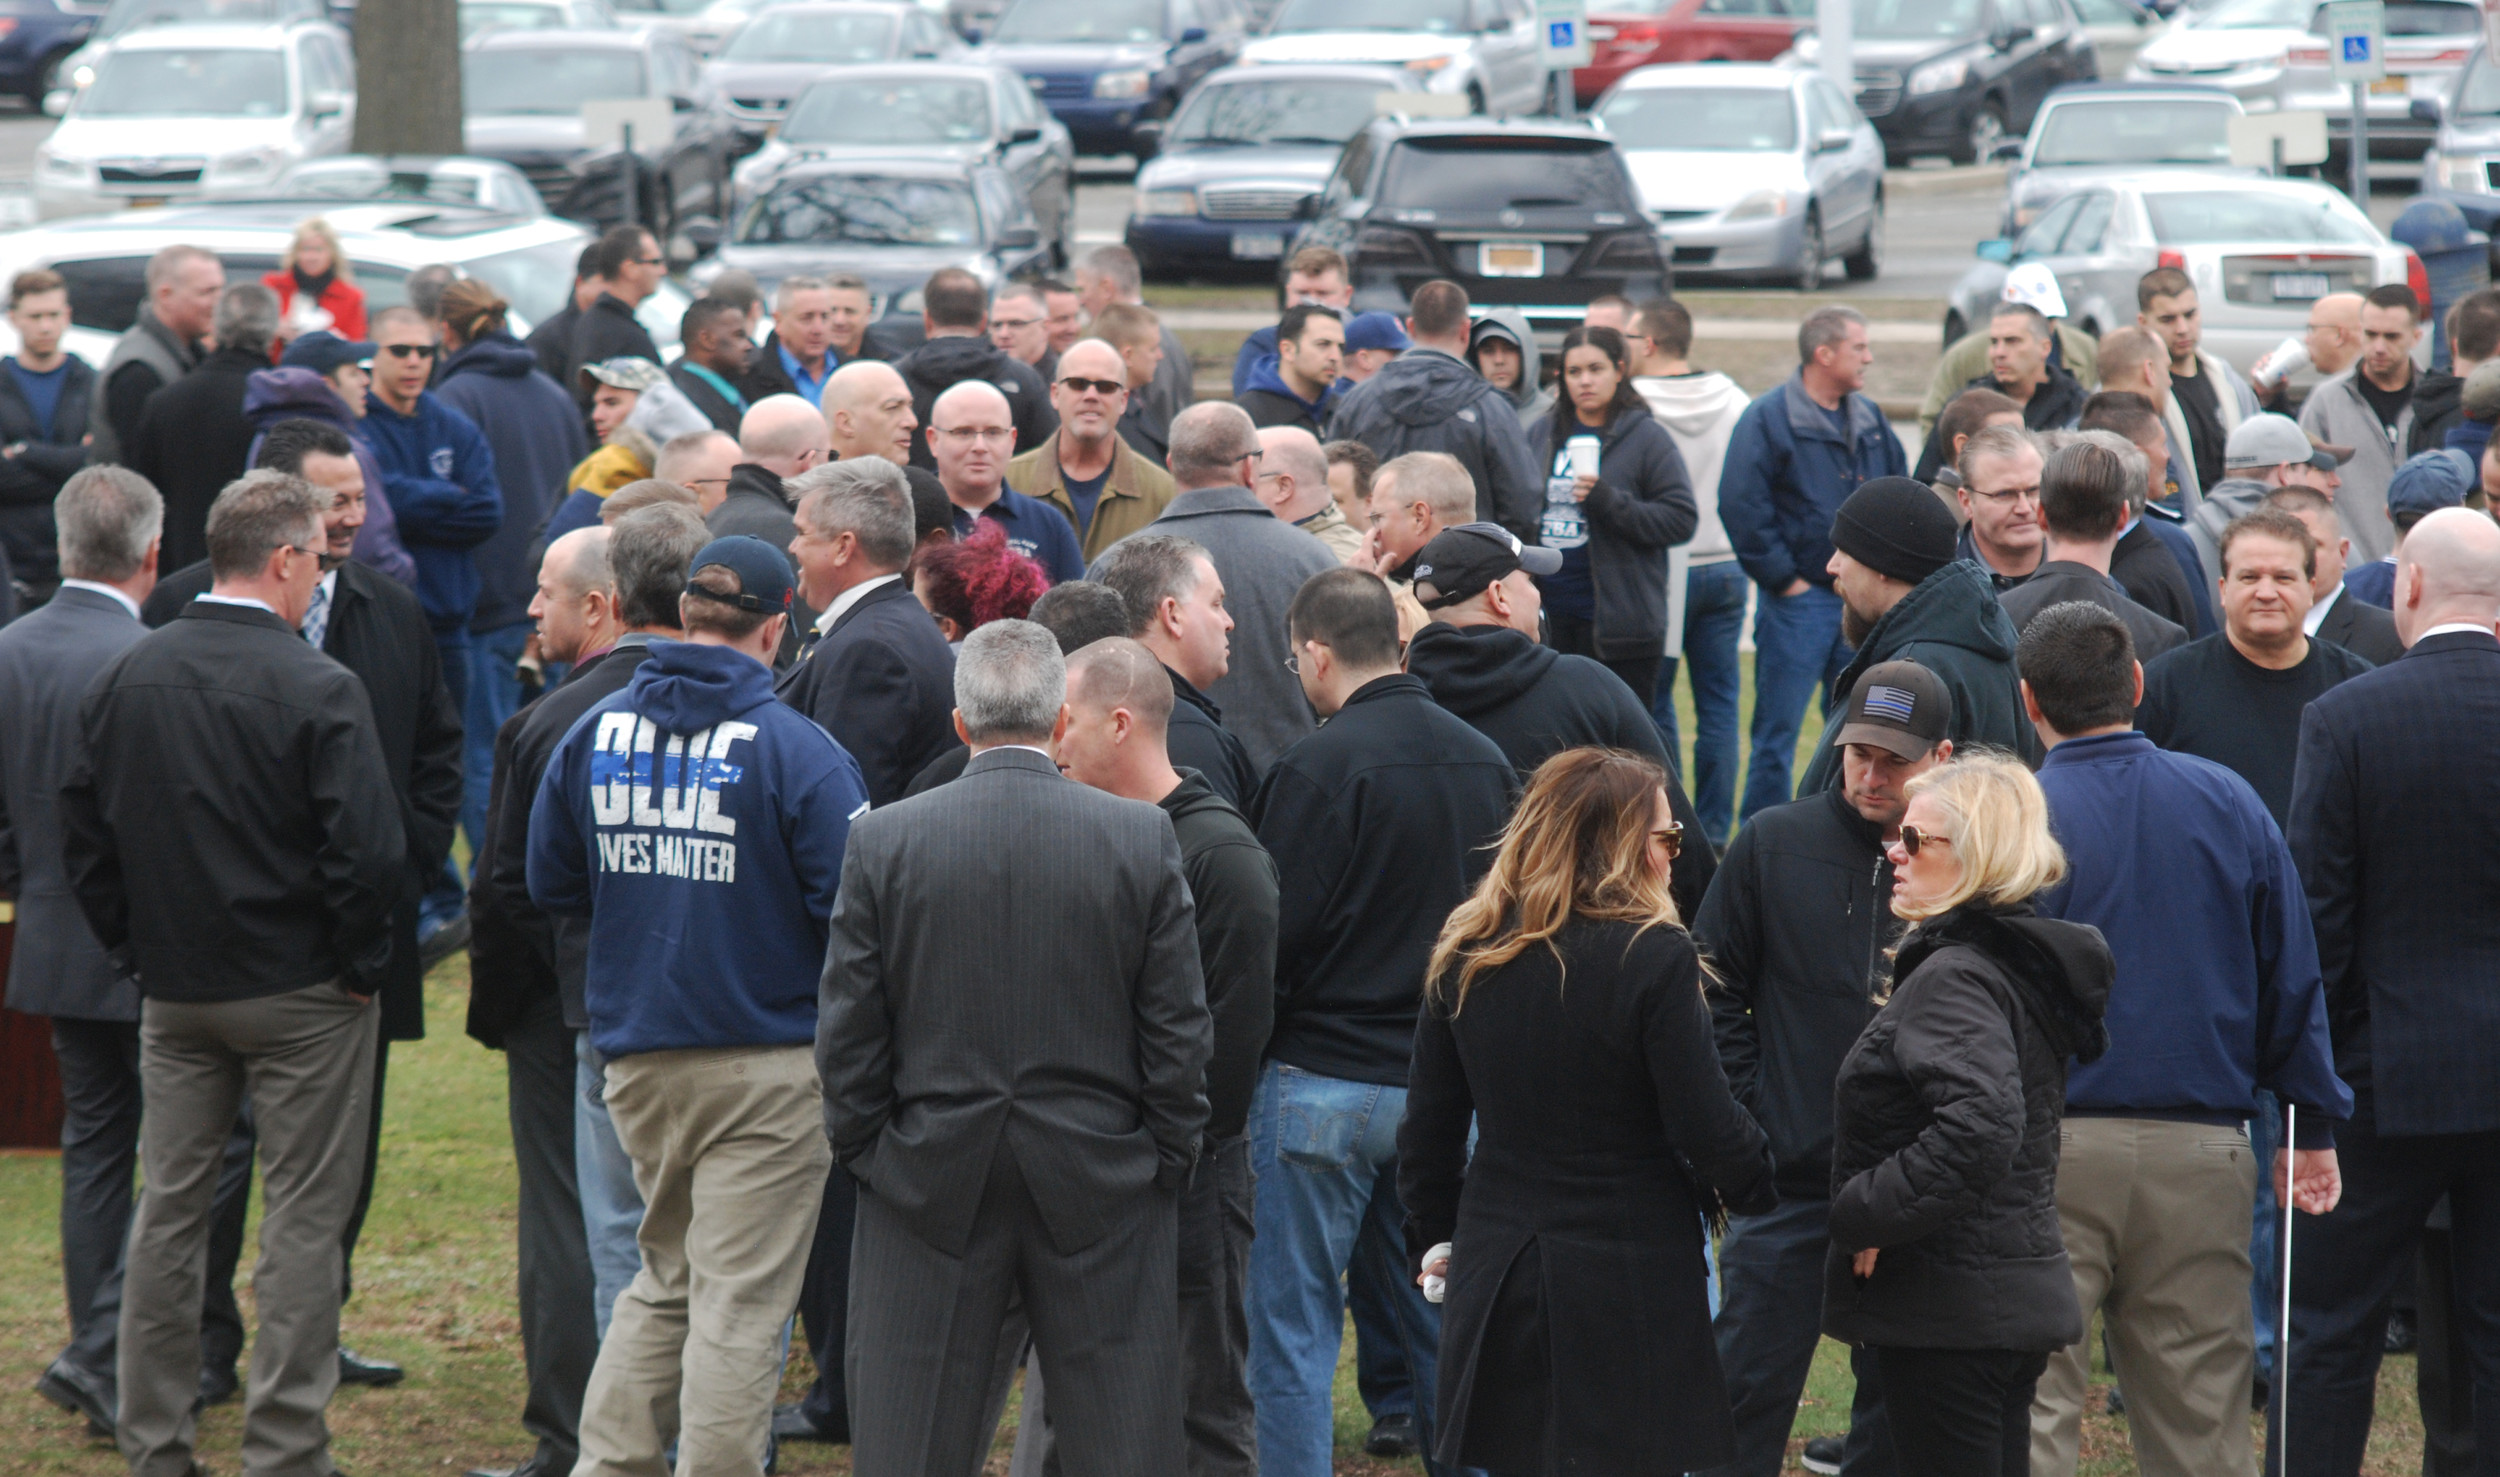 Police officers, firefighters and sanitation worker gathered outside the courthouse early before Federico was led into court around 9:15 a.m.